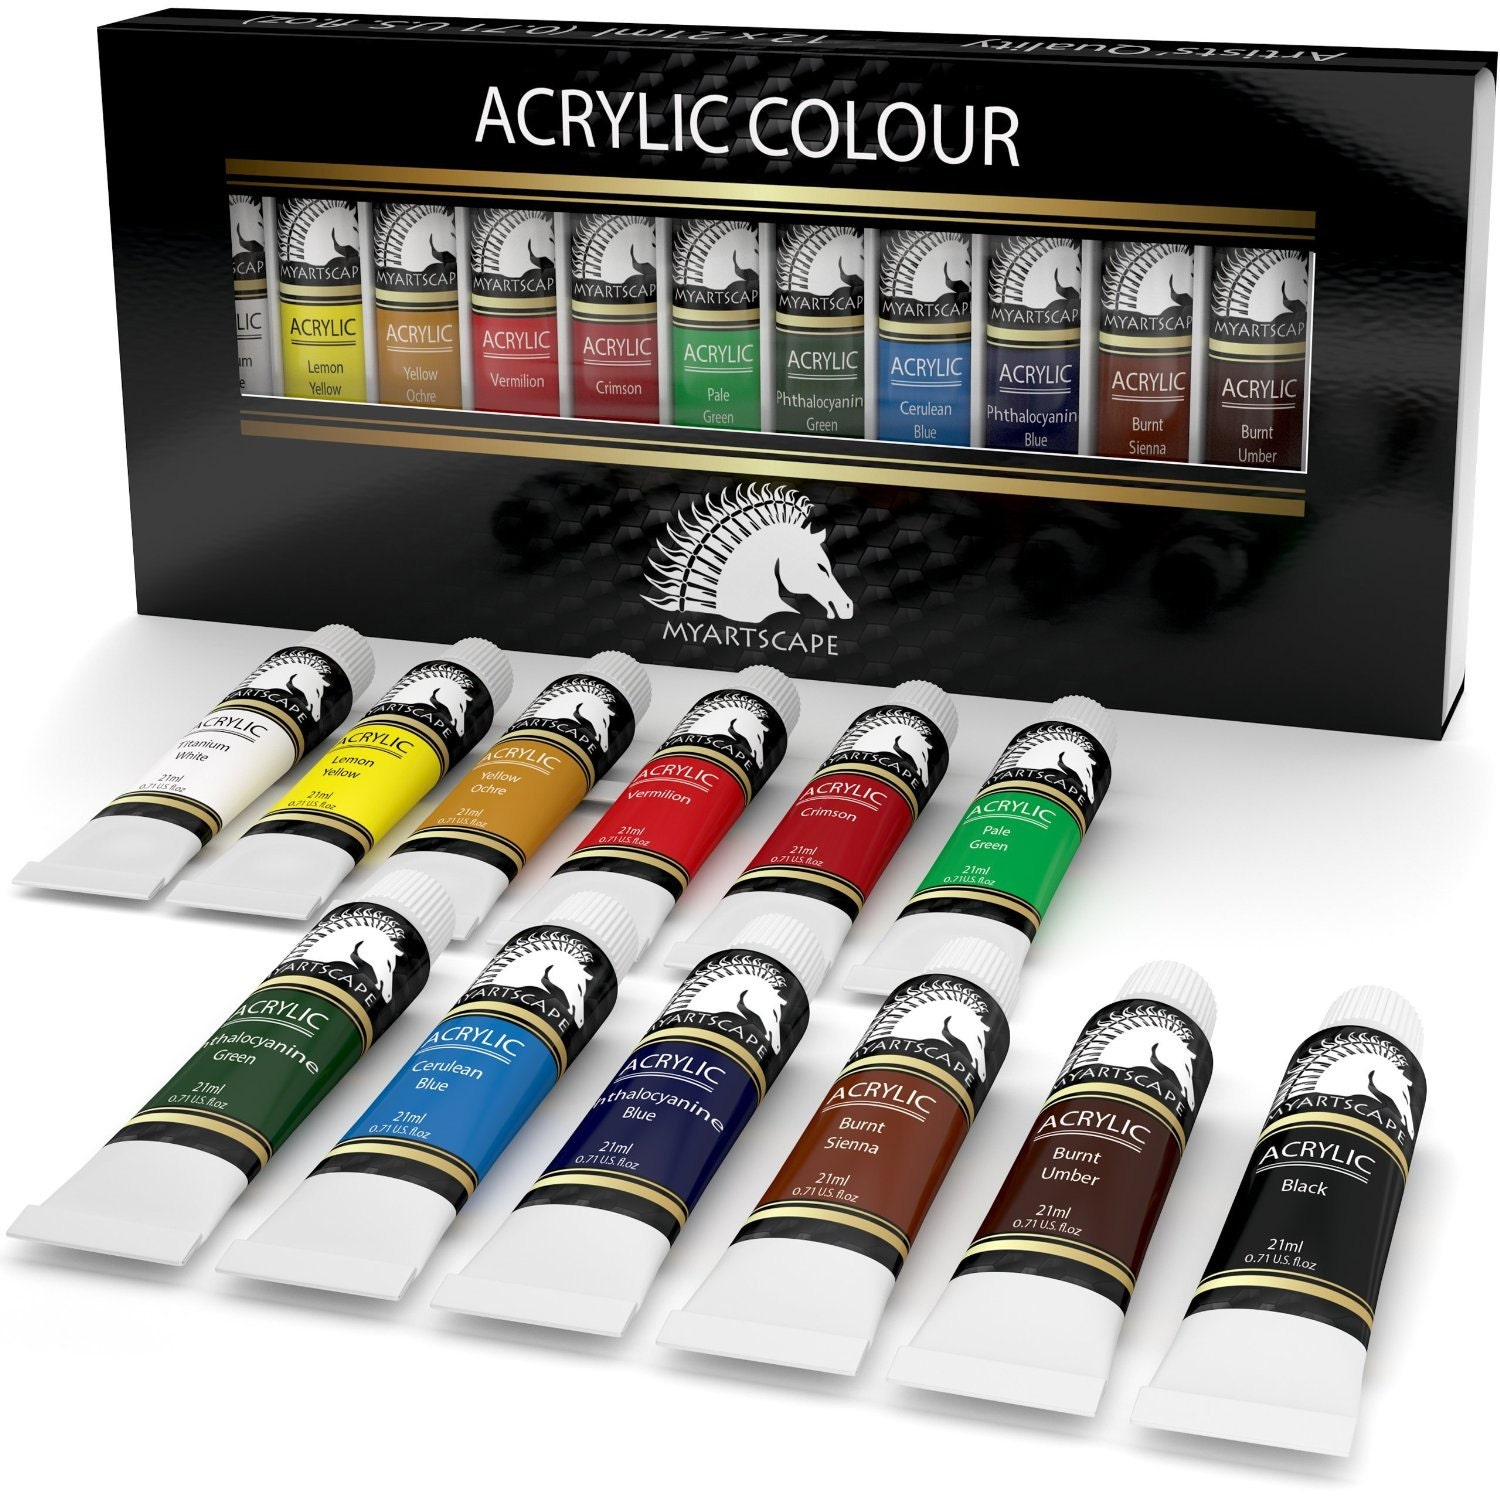 12x21ml acrylic paint set artist quality paints for for Acrylic mural paint supplies